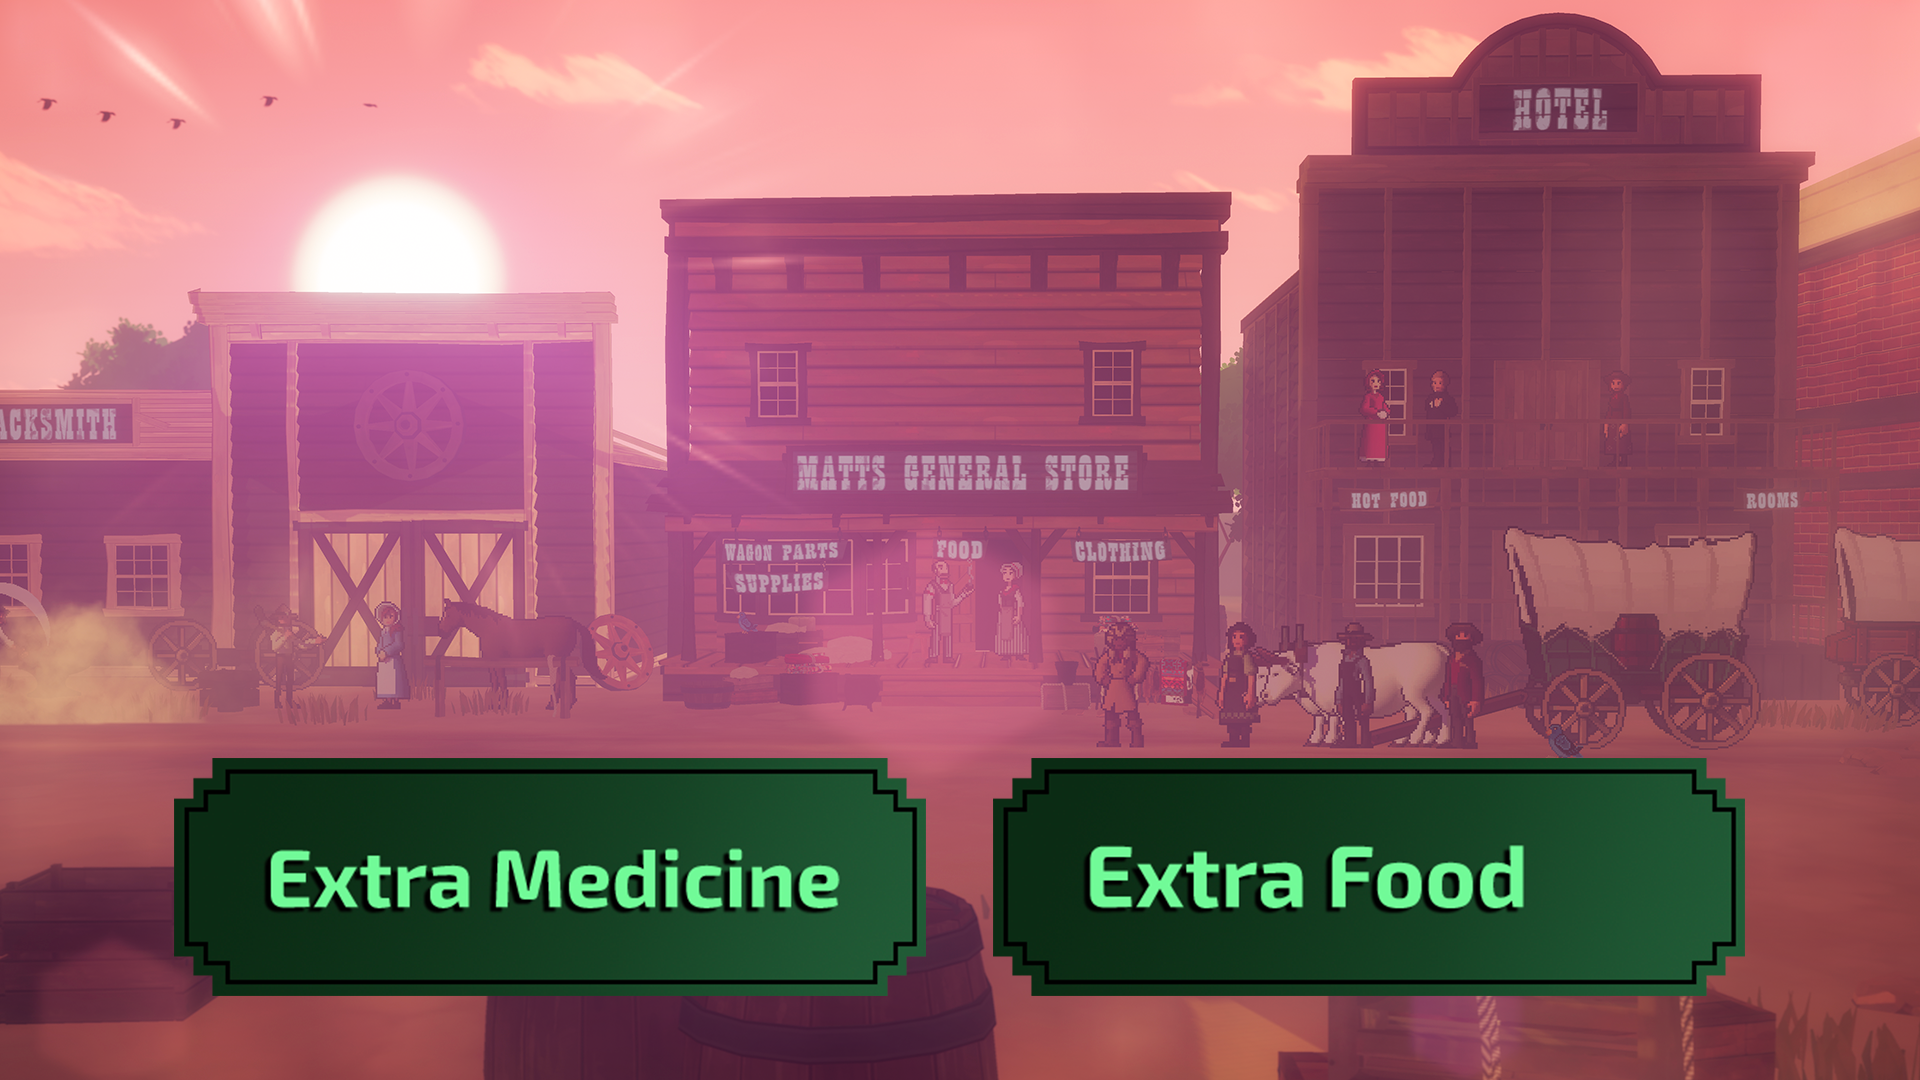 A town in the Old West, along with a graphic of two choices: Extra Medicine and Extra Food